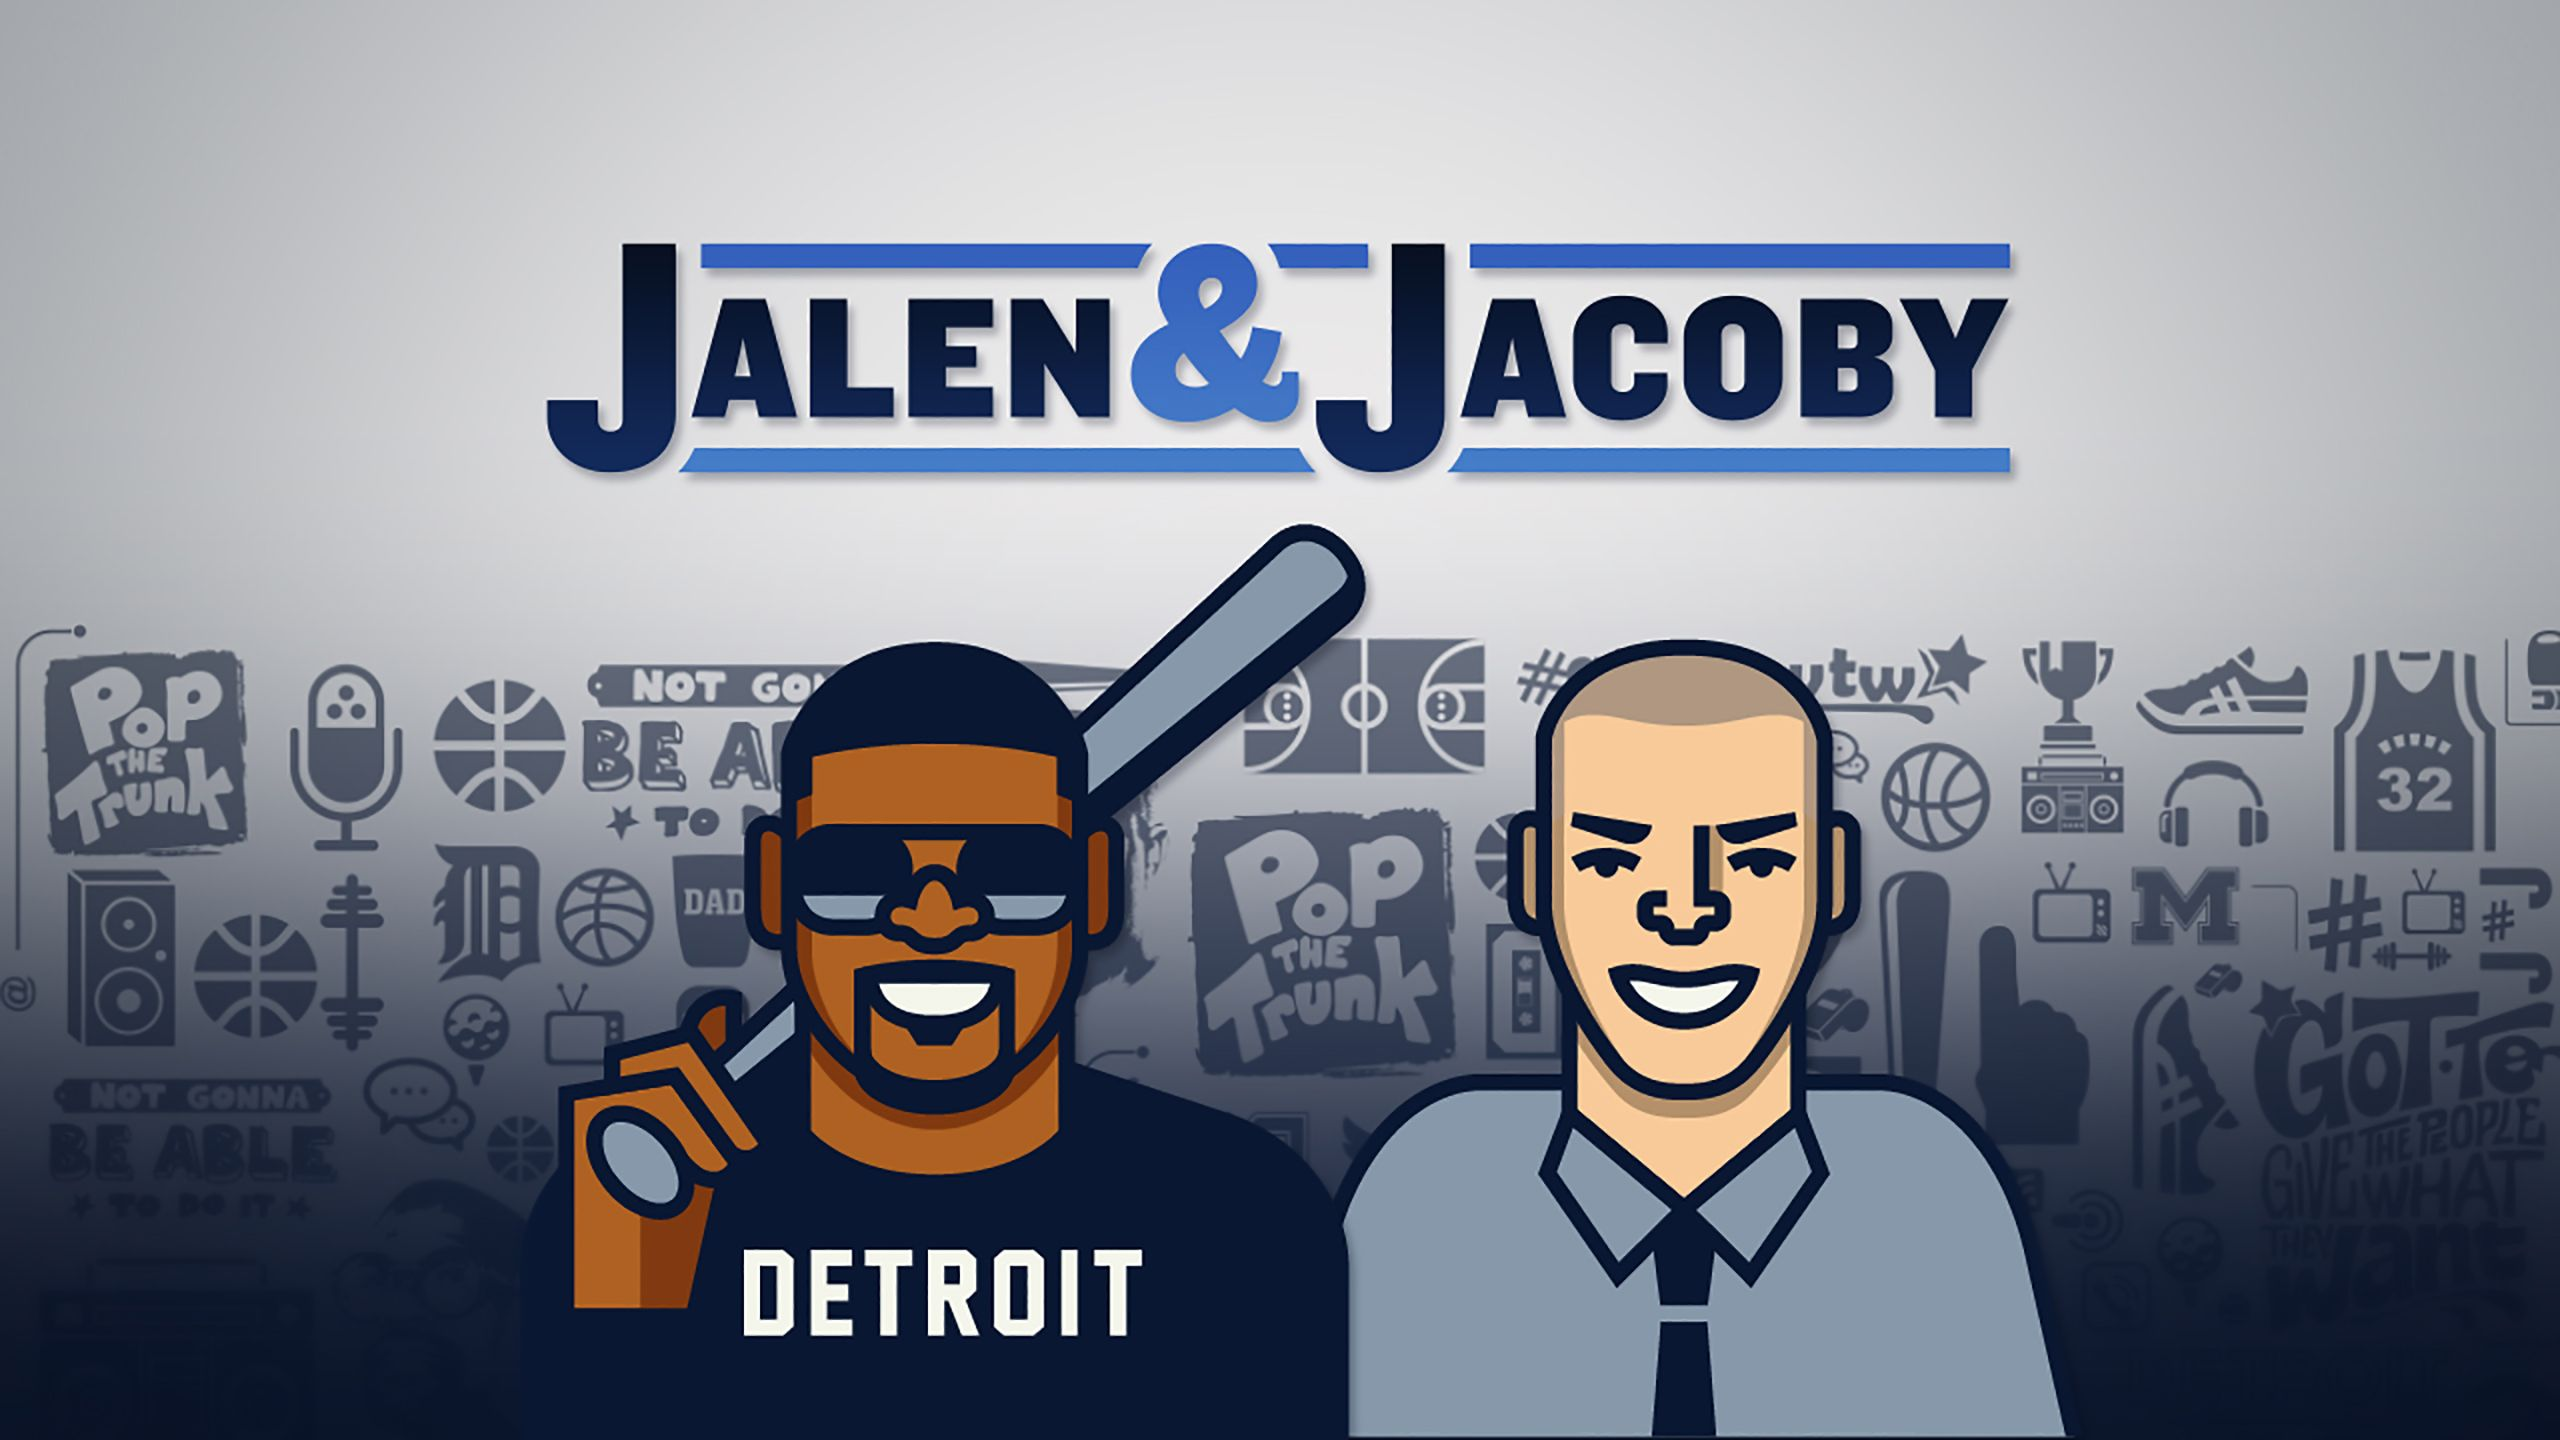 Fri, 7/20 - Jalen & Jacoby